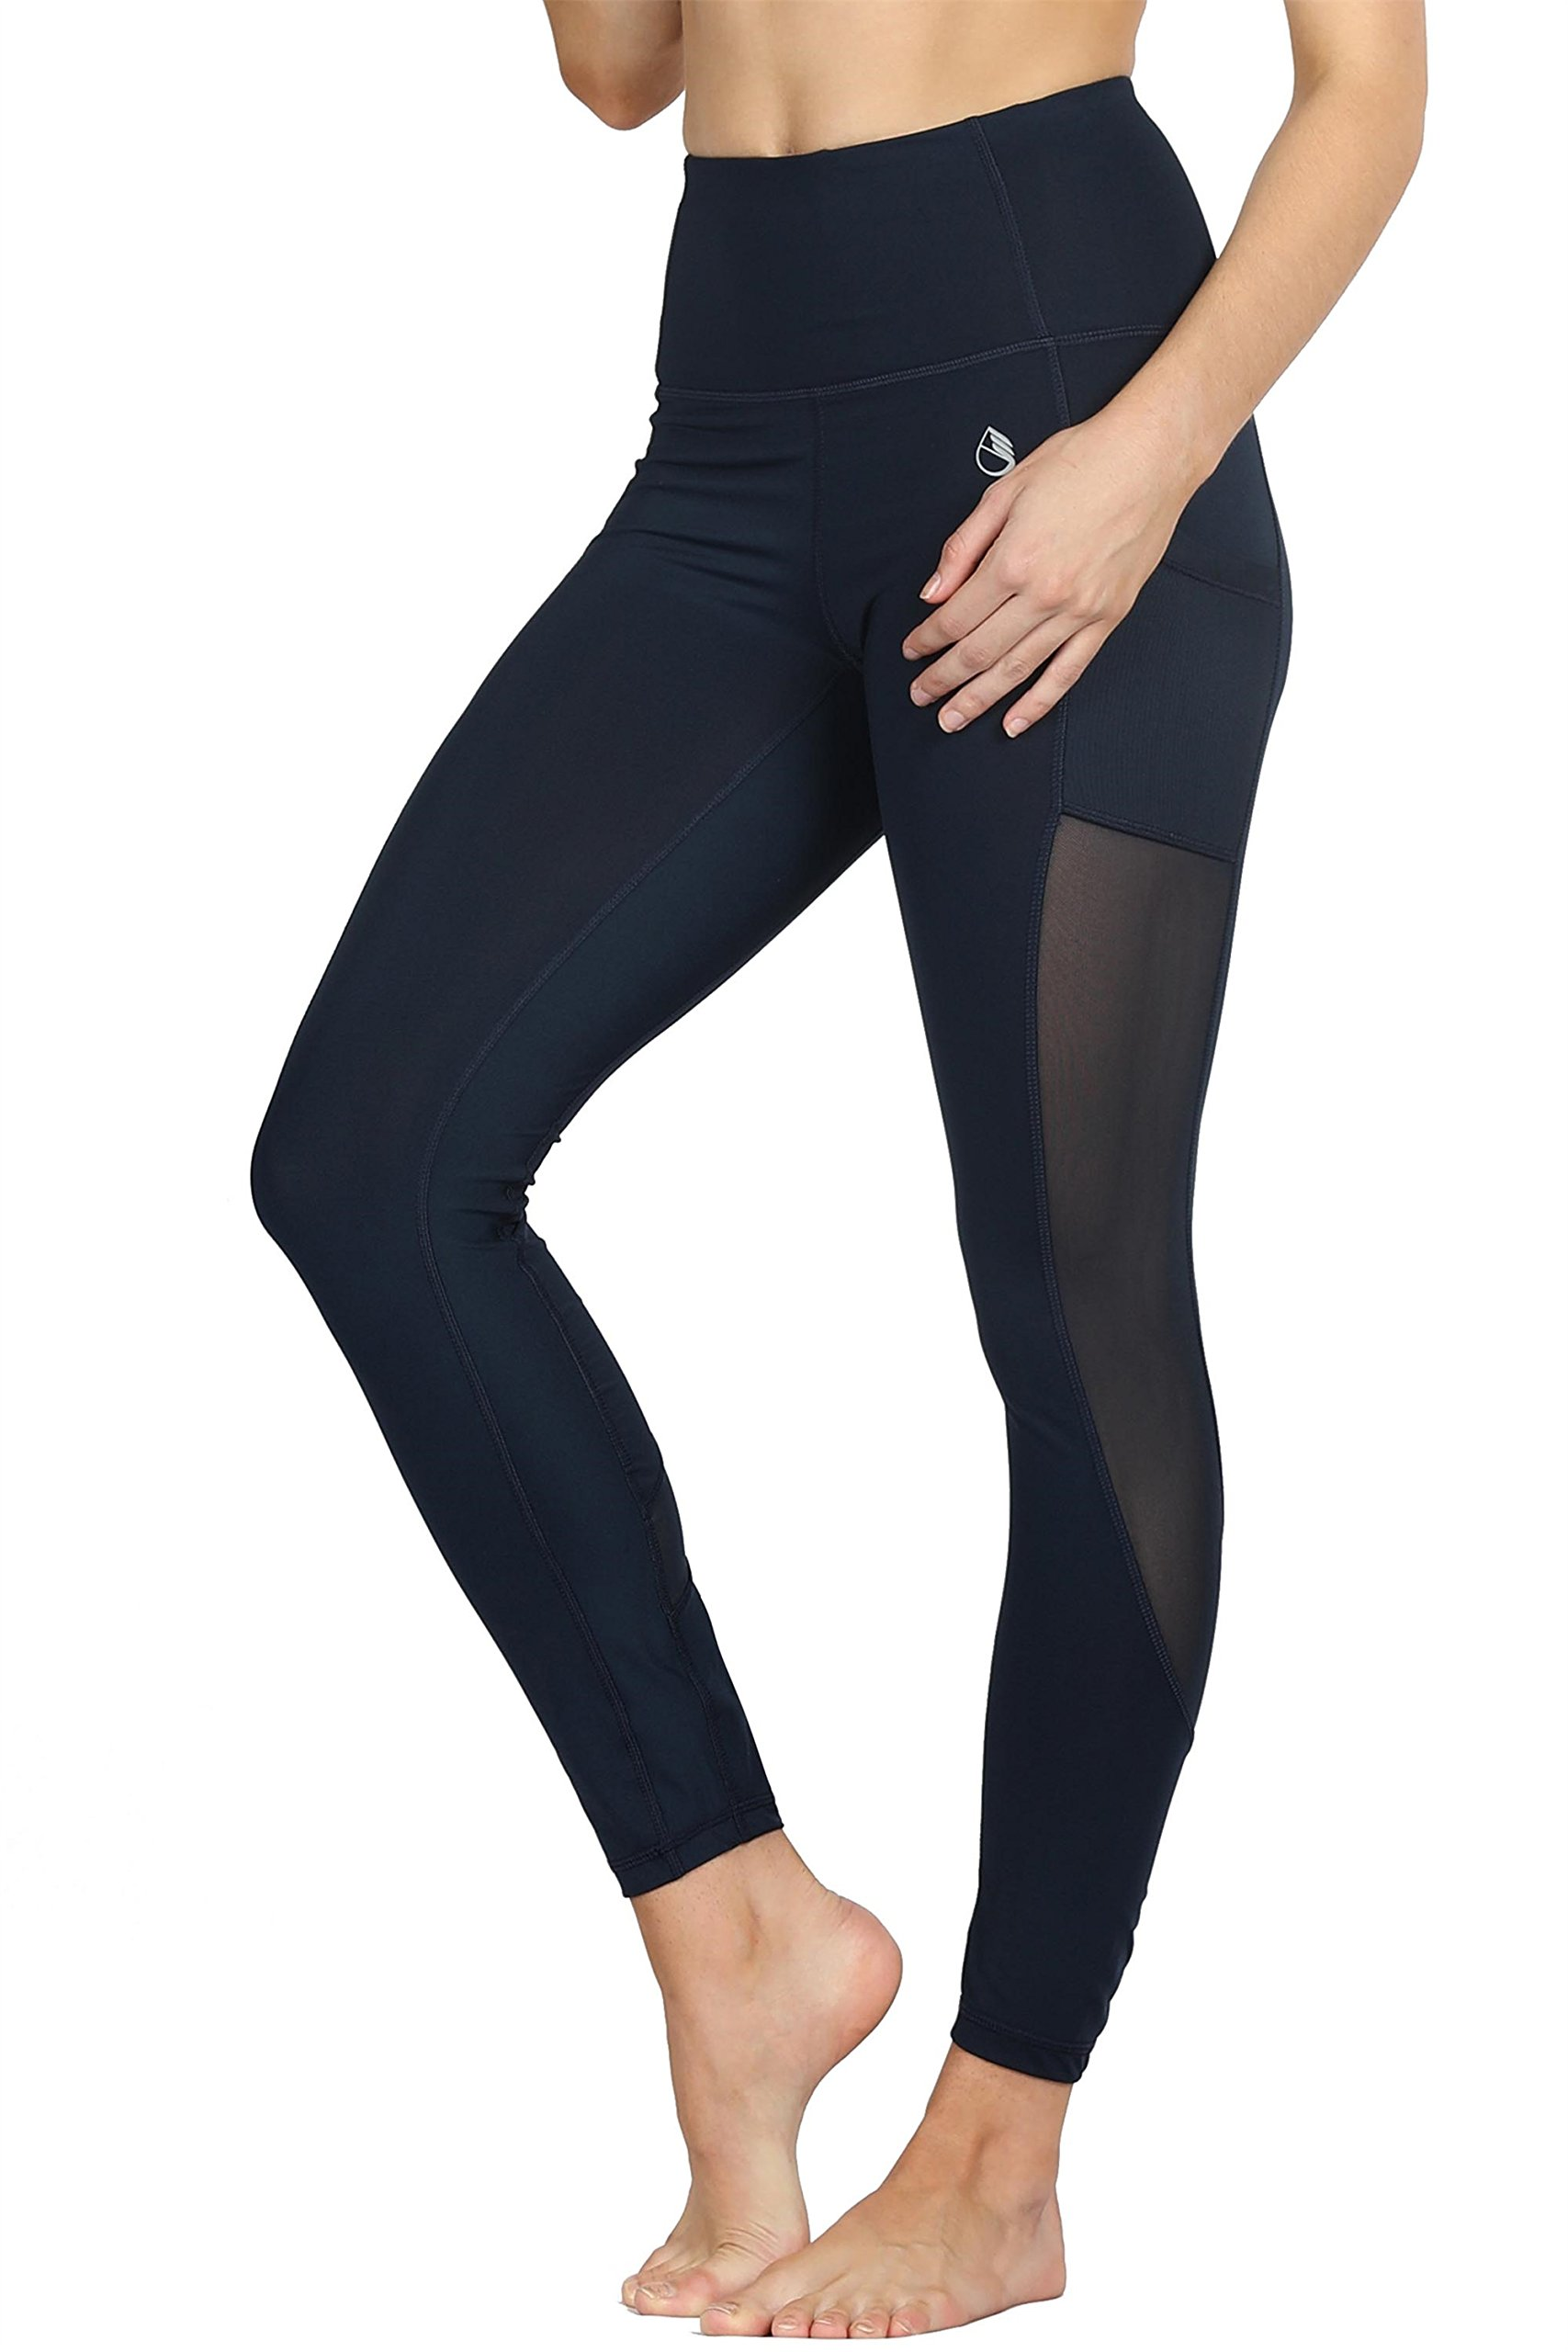 icyzone Tummy Control Slimming Shaping High Waist Yoga Tights Leggings with Mesh (M, Blueberry)